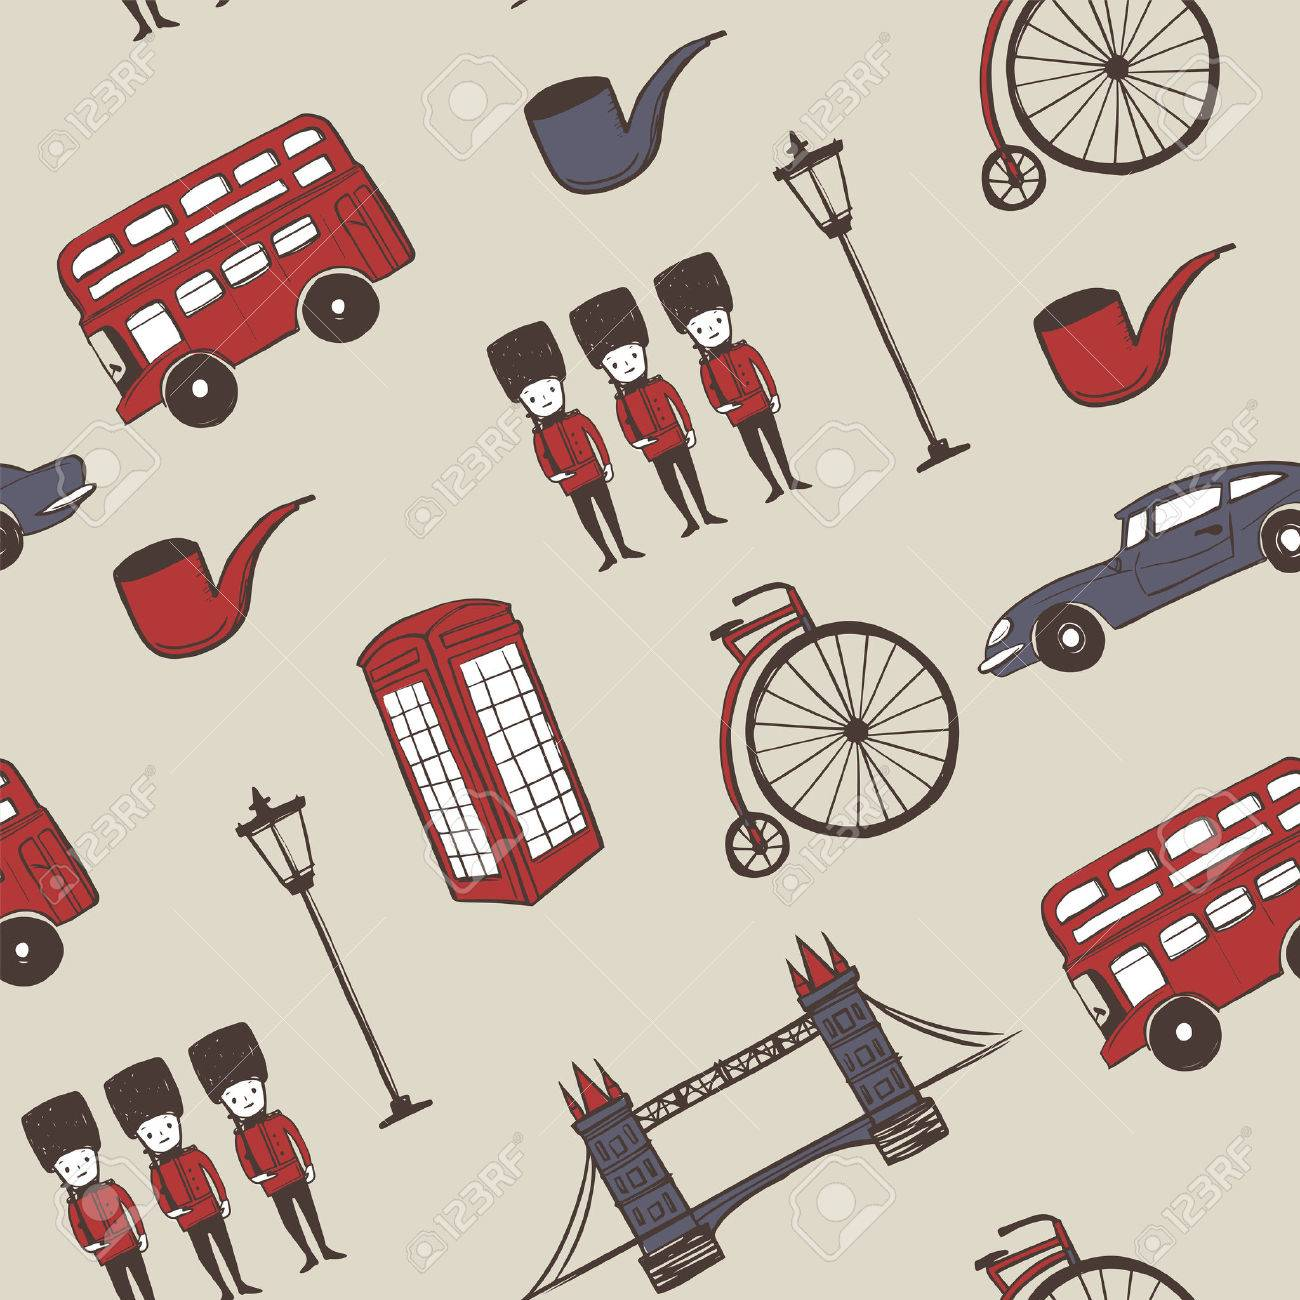 lovely hand drawn travel concept background with landmarks and